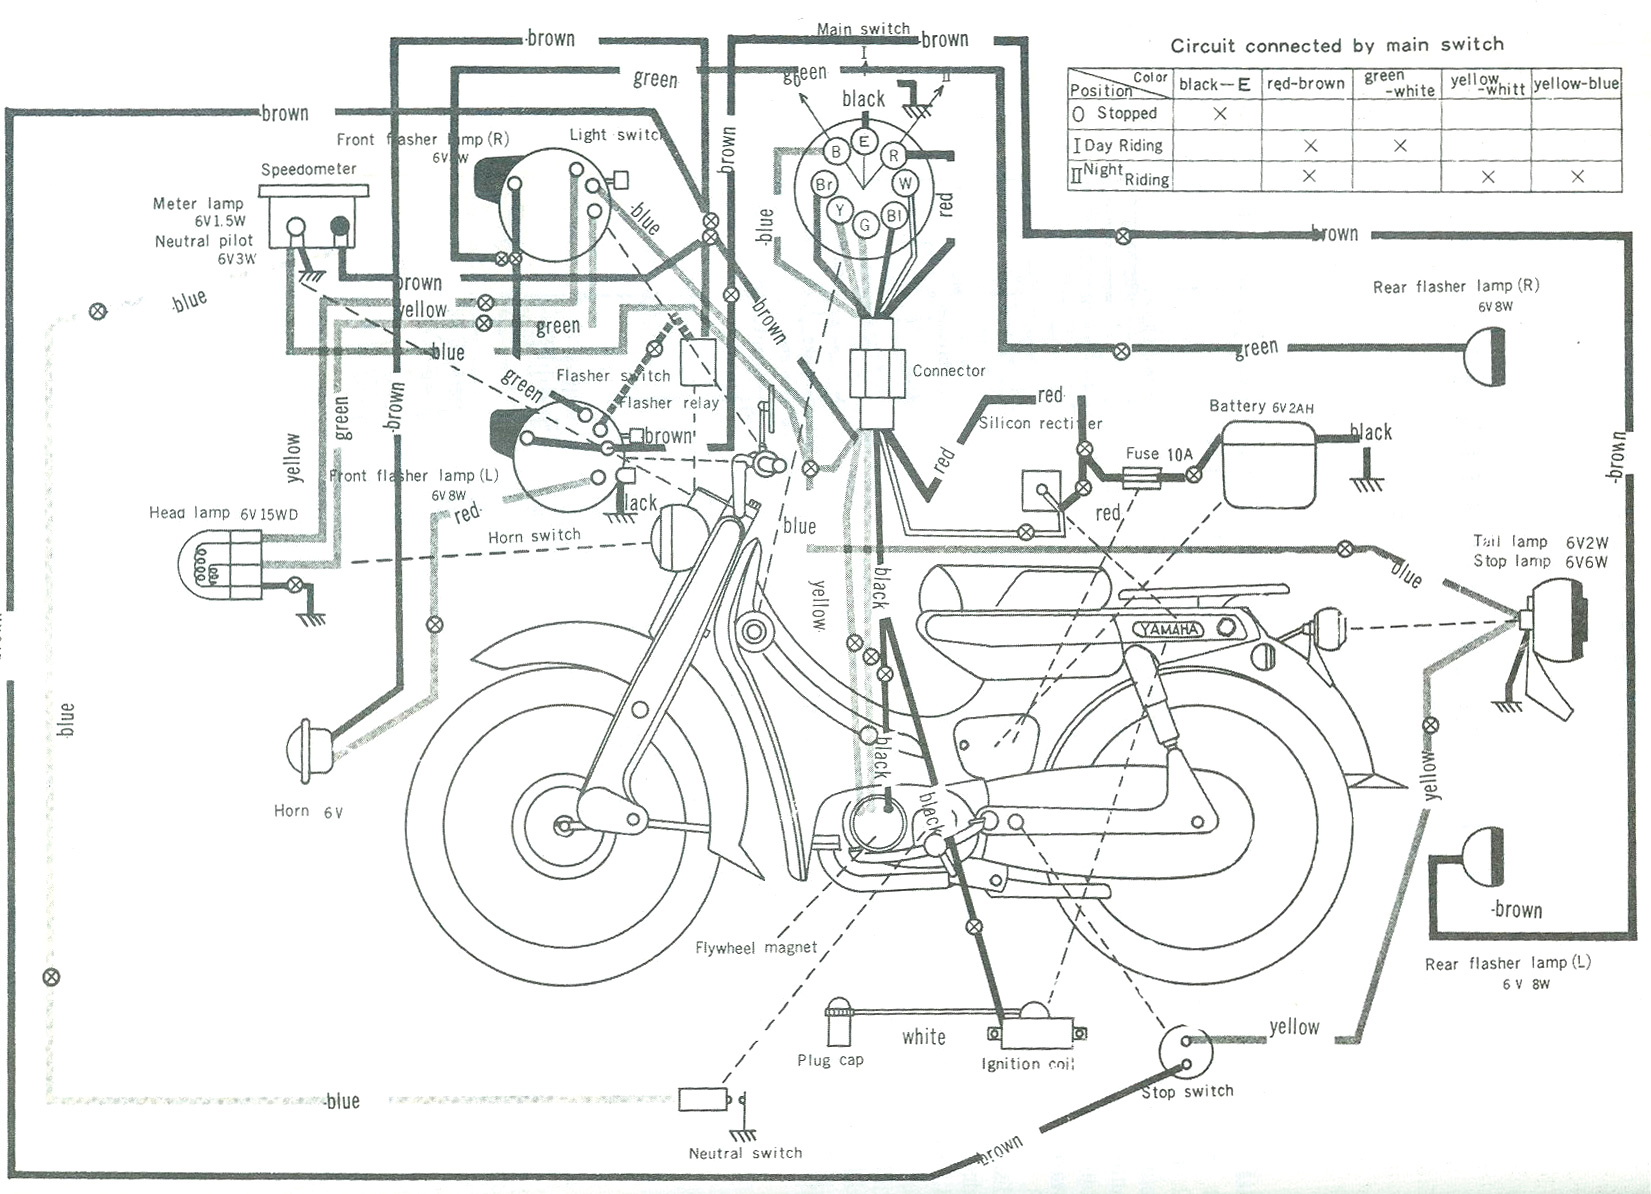 1980 Xt250 Wiring Diagram Libraries Yamaha Virago On 89 Moto 4 250 Dt 100 Diagramsyamaha Simple Schema